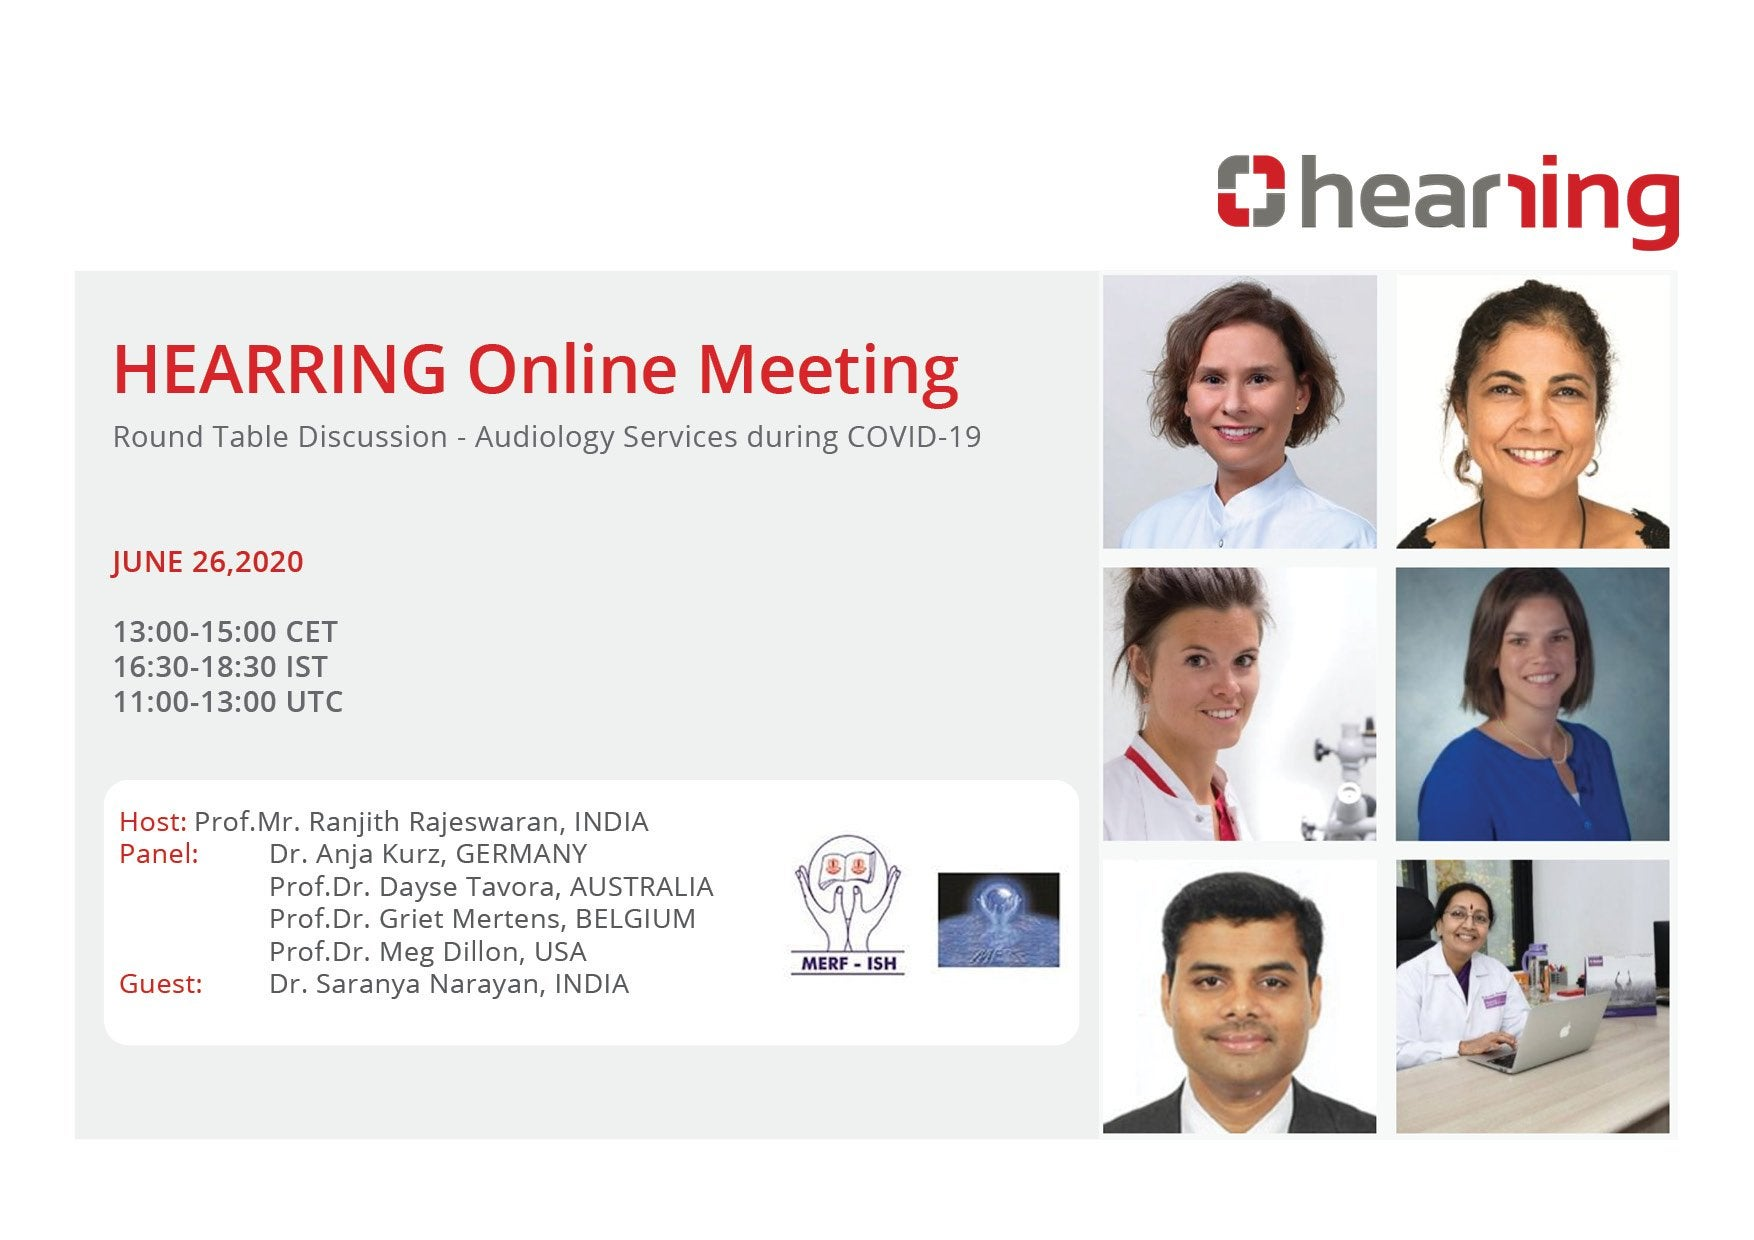 online meeting audiology services covid Hearring